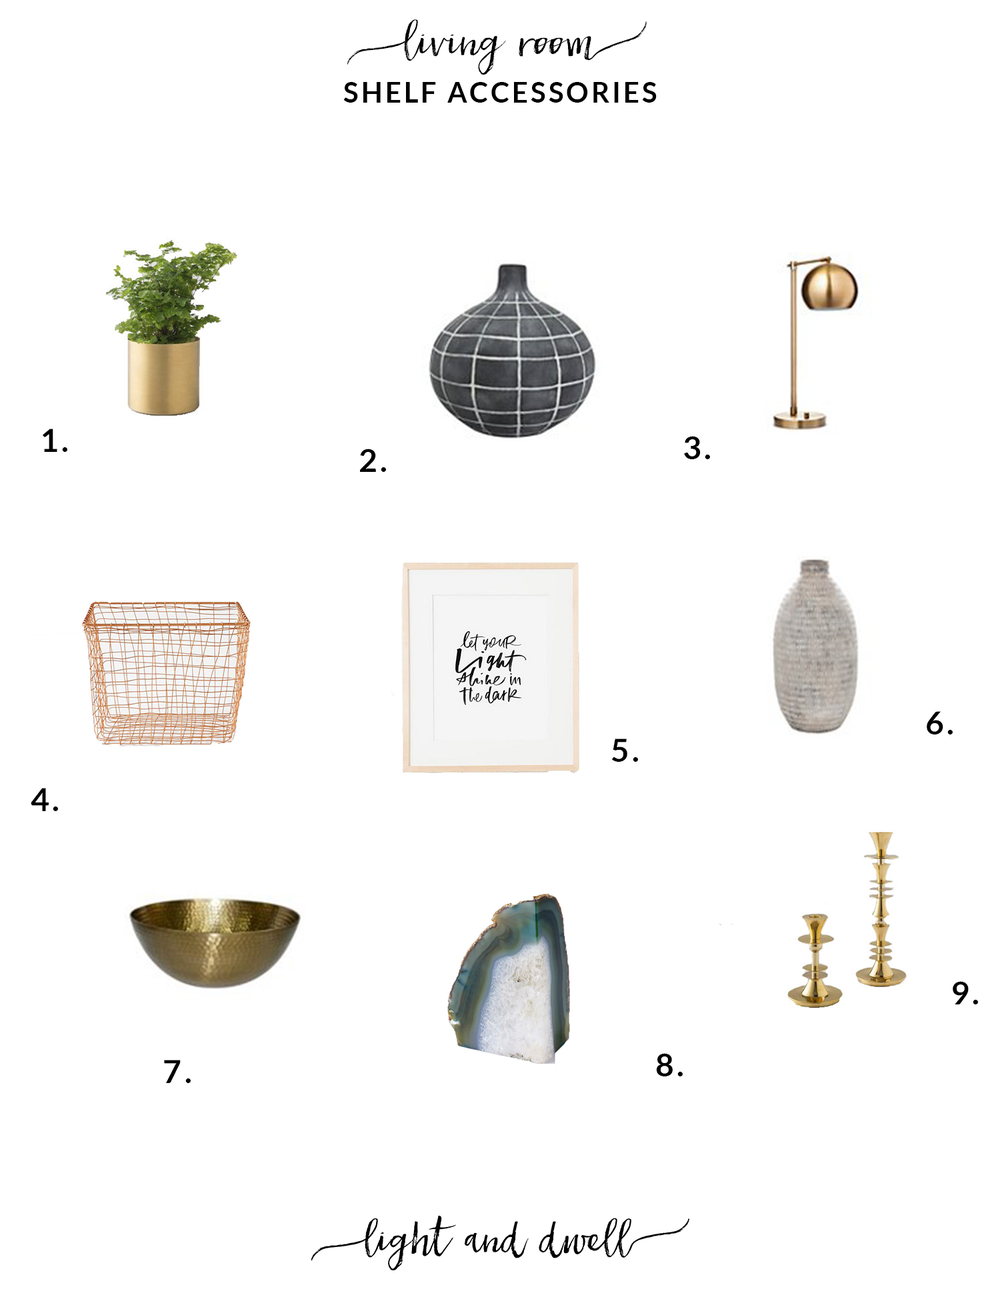 Inspiration Living Room Shelf Accessories 4 Elm Light Wiring Diagram Brass Table Lamp Target Copper Wire Basket West 5 Let Your Shine In The Dark Oh My Deer On Etsy 6 White Vase 7